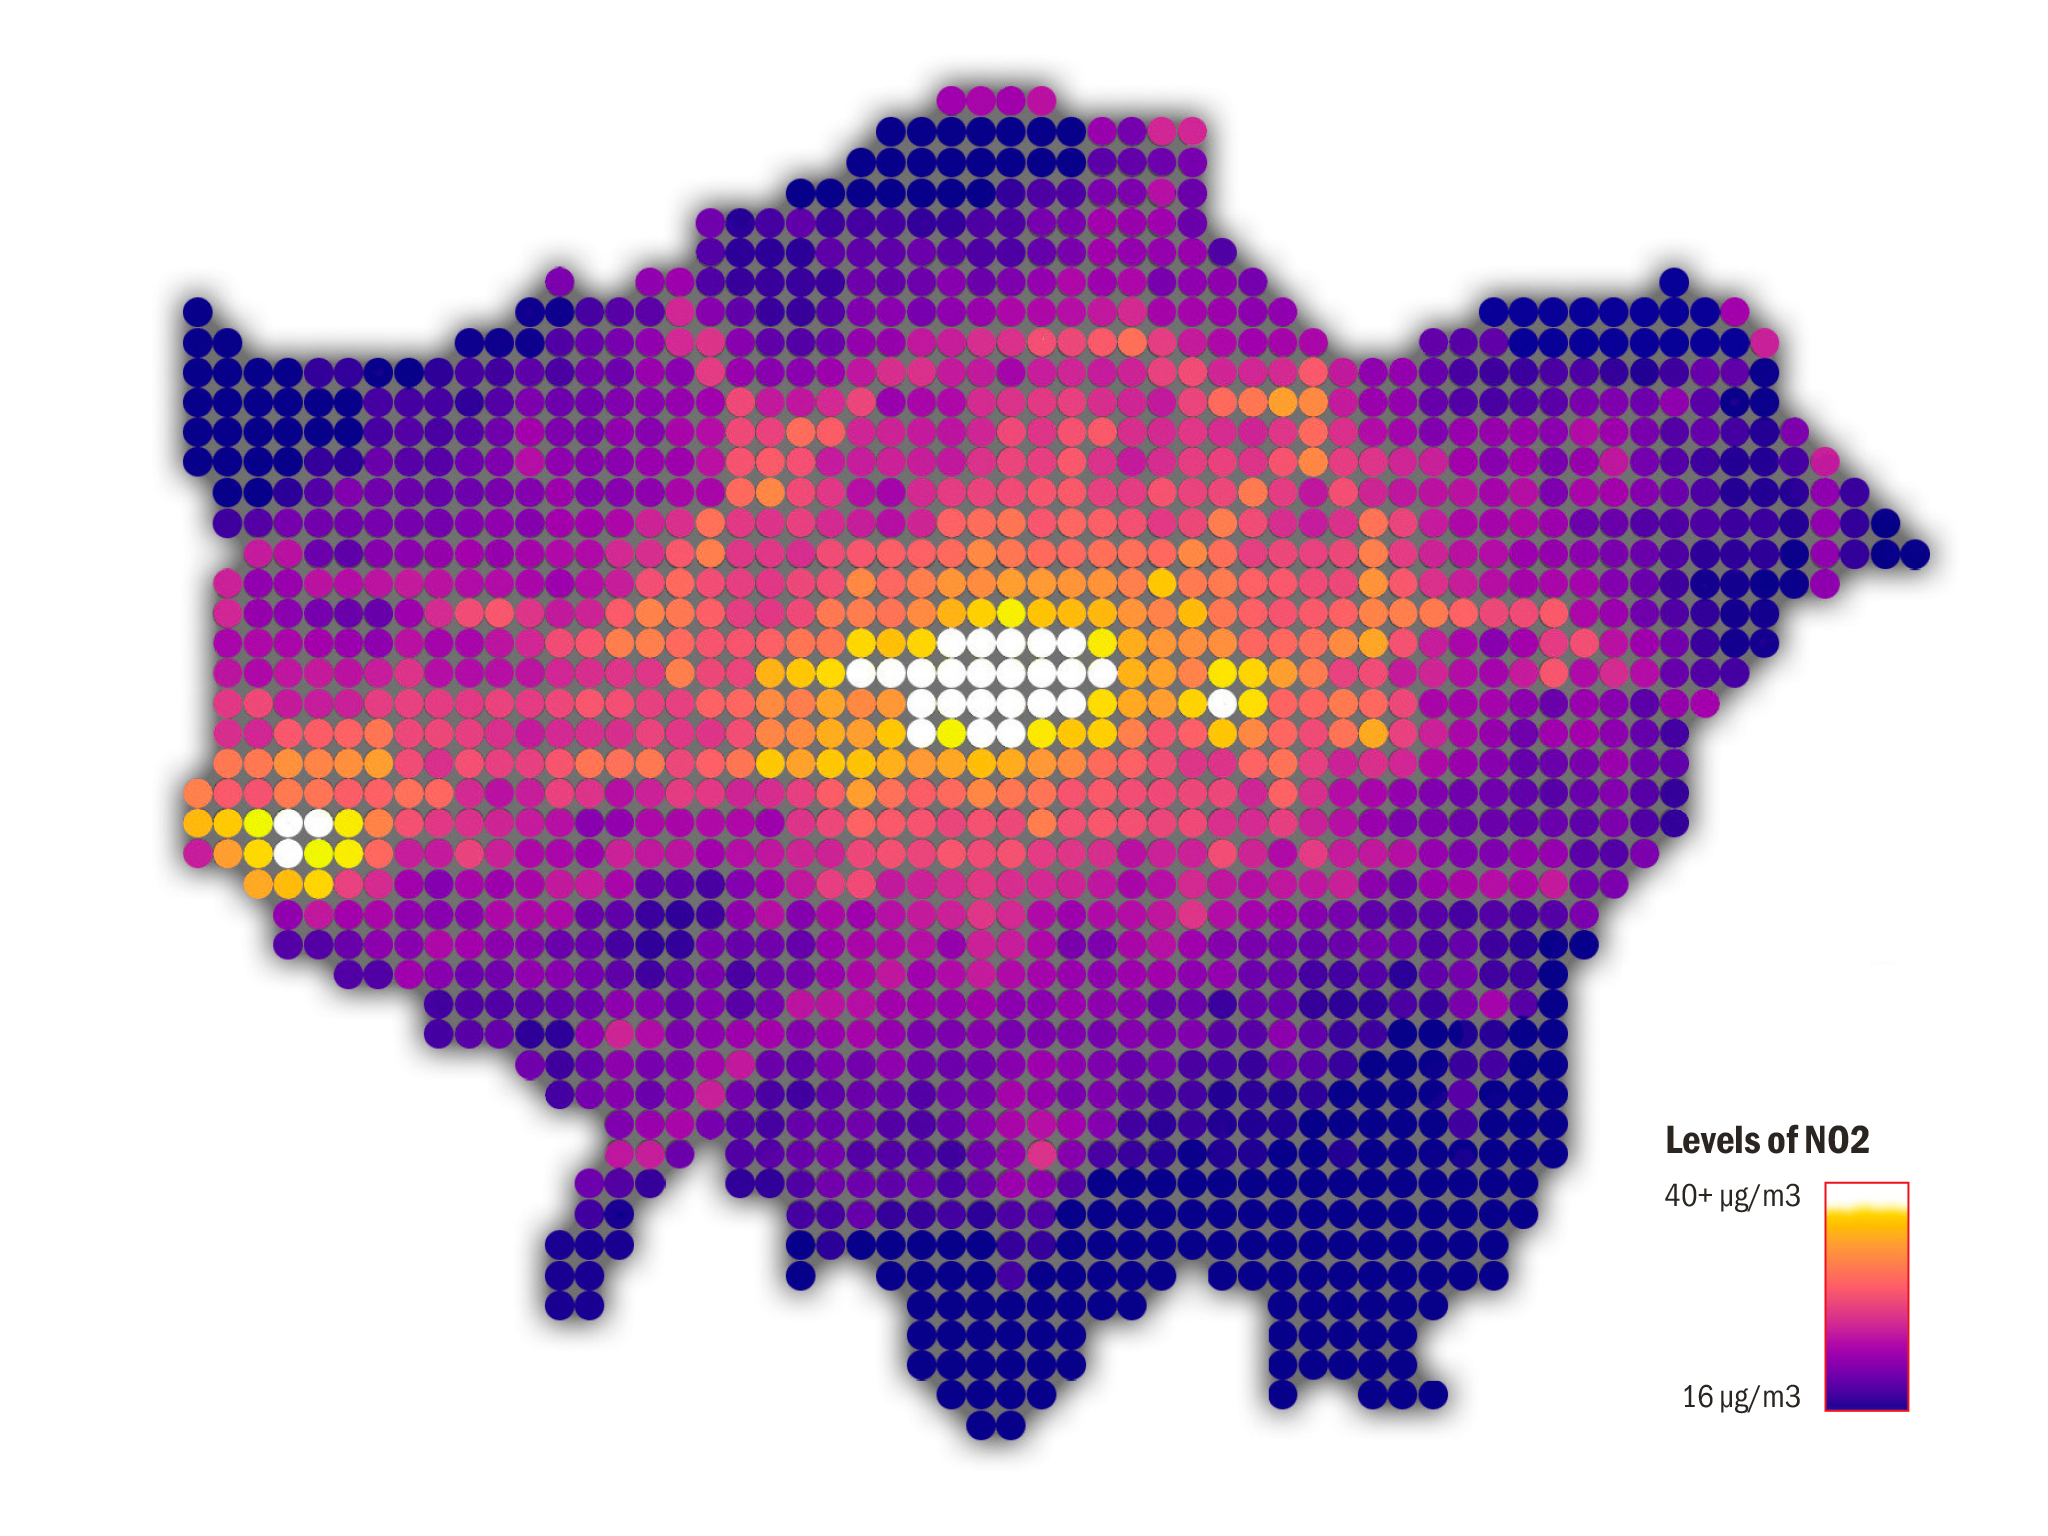 A map of London's most polluted areas